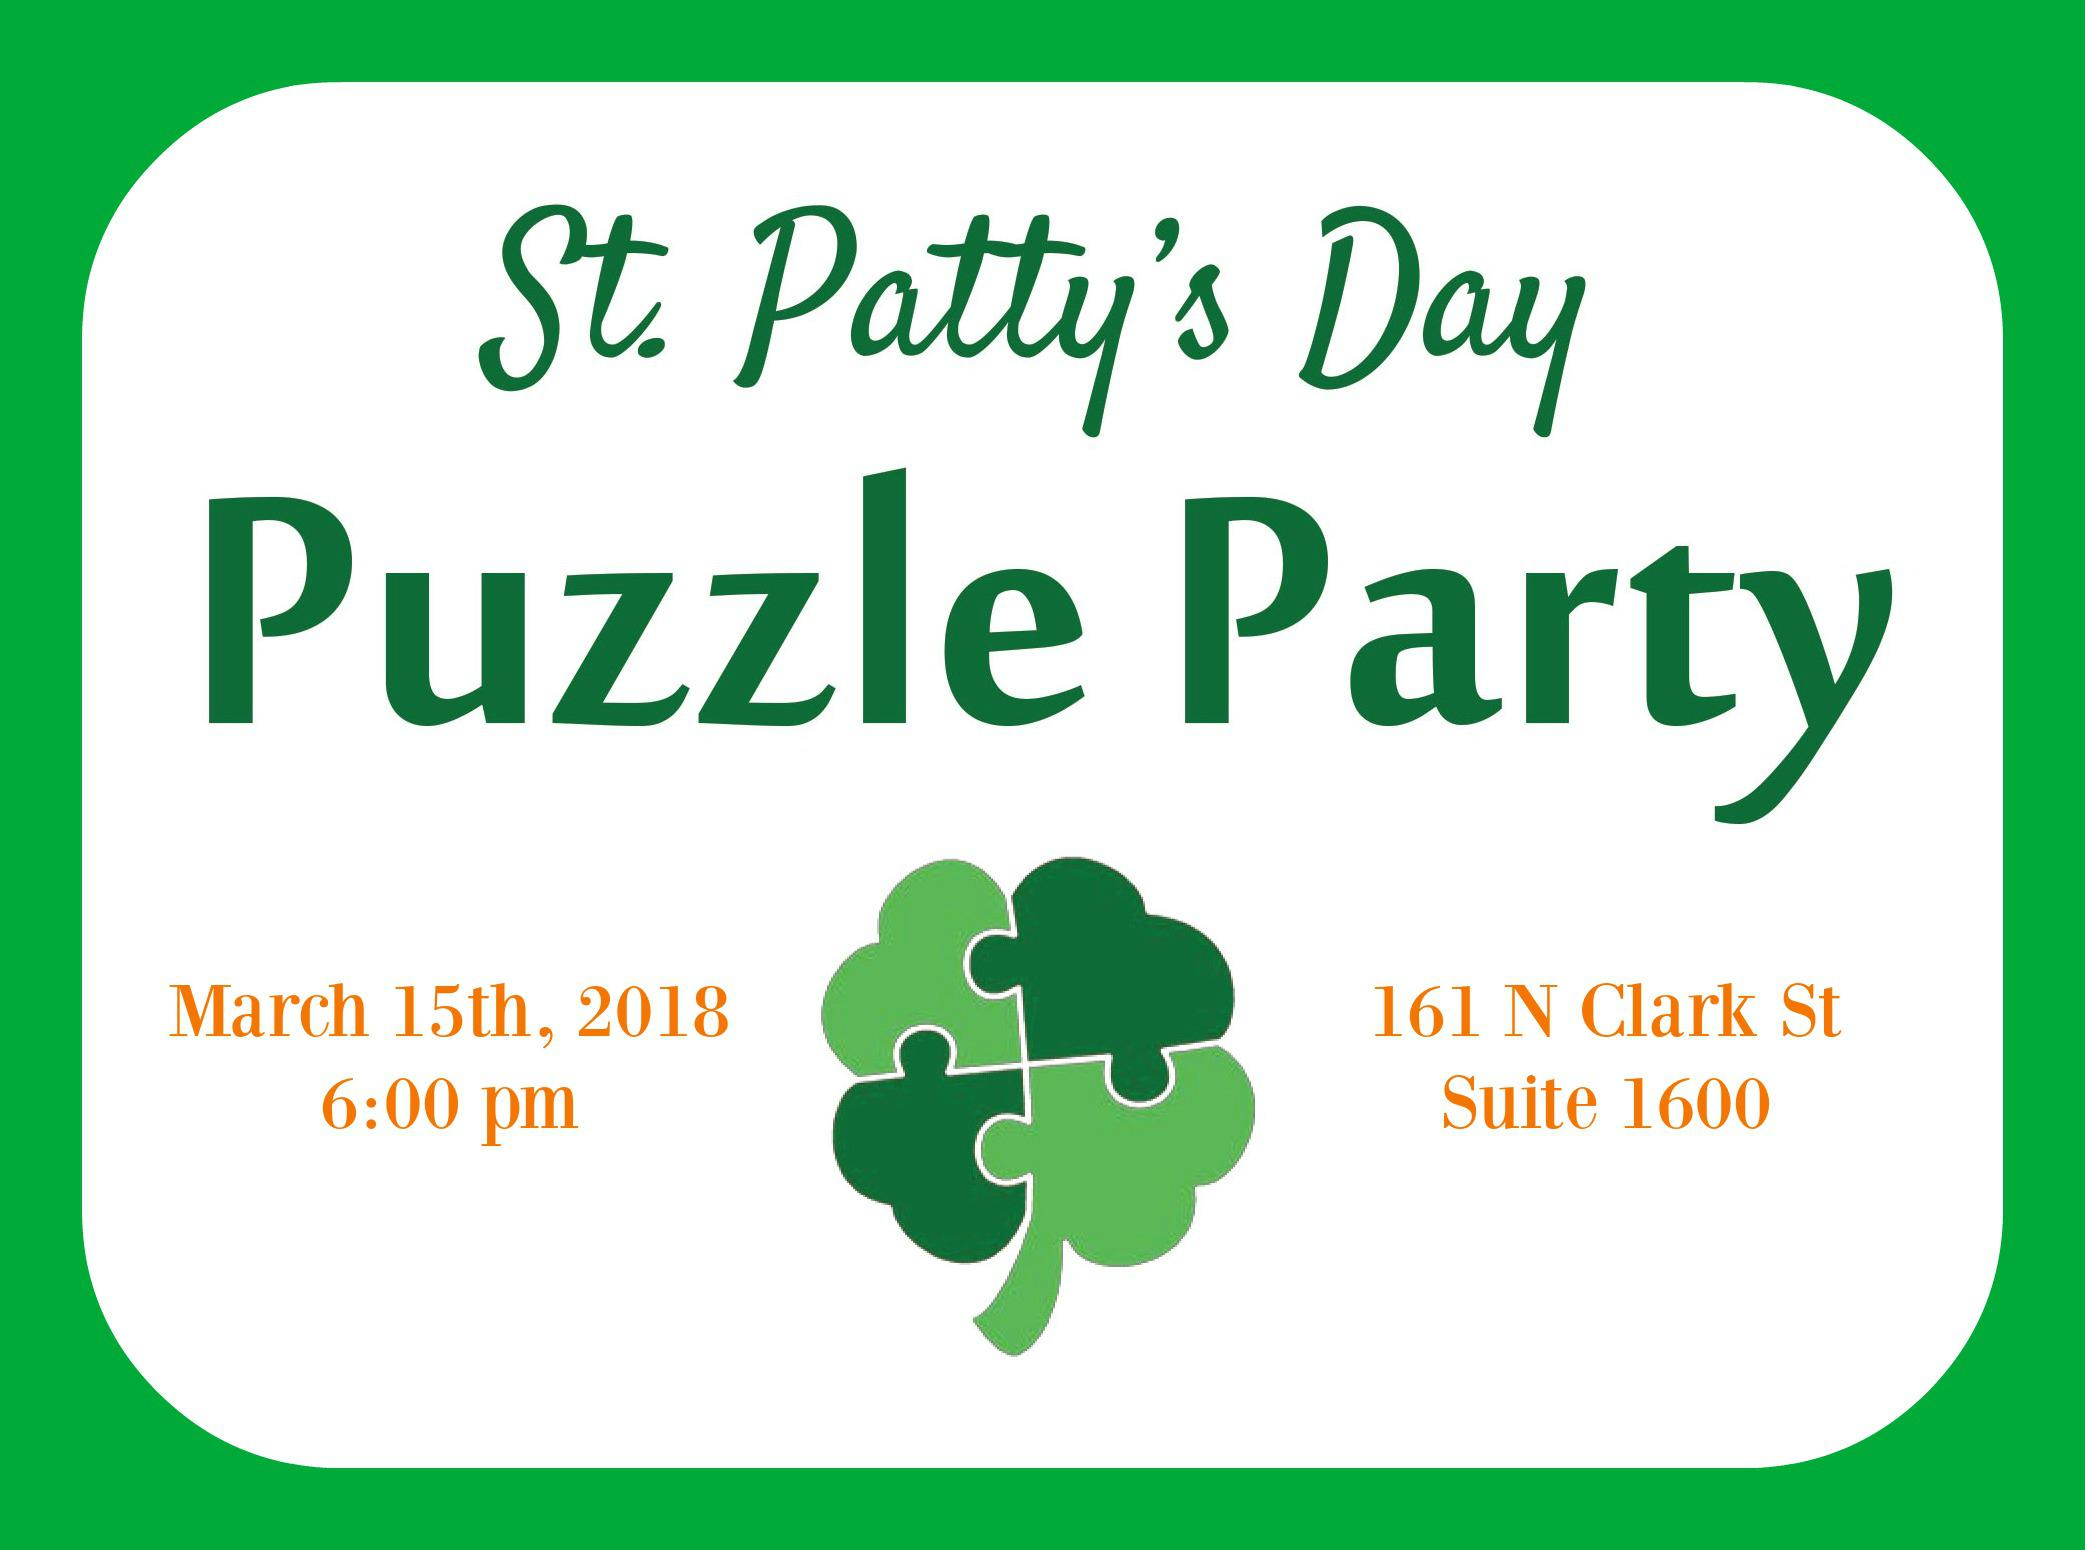 St. Patty's Day Puzzle Party